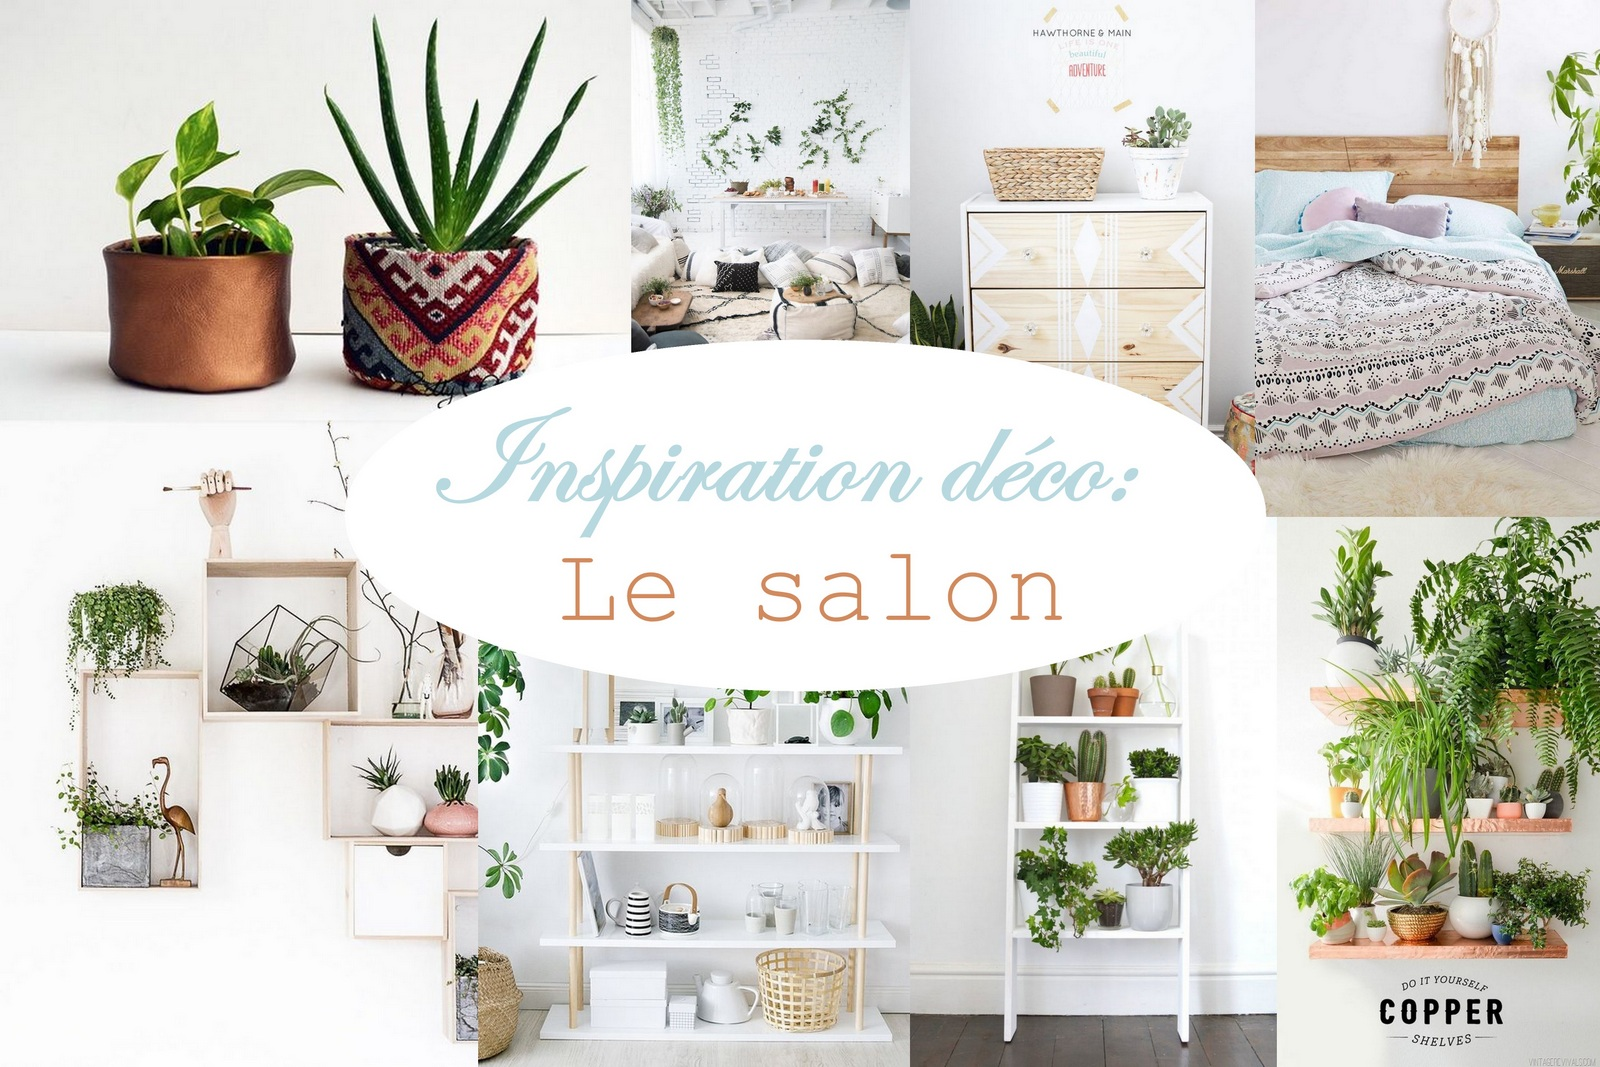 Inspiration d co le salon mon carnet d co diy for Idee deco salon 2016